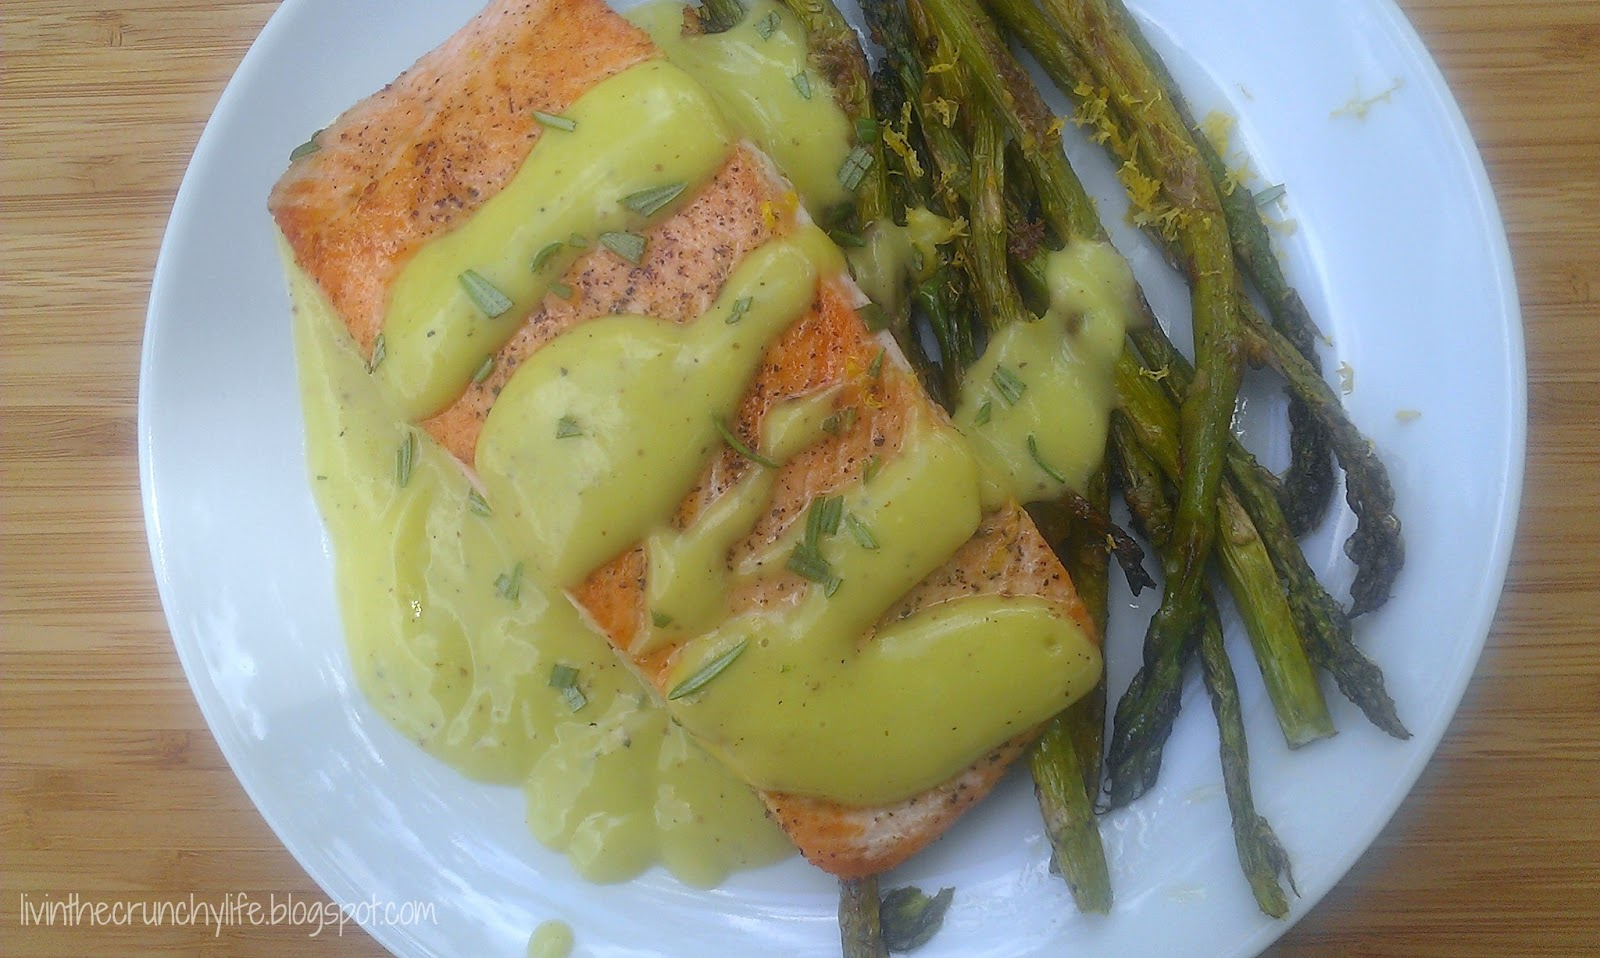 Pan-fried Salmon with a Creamy Meyer Lemon Vinaigrette